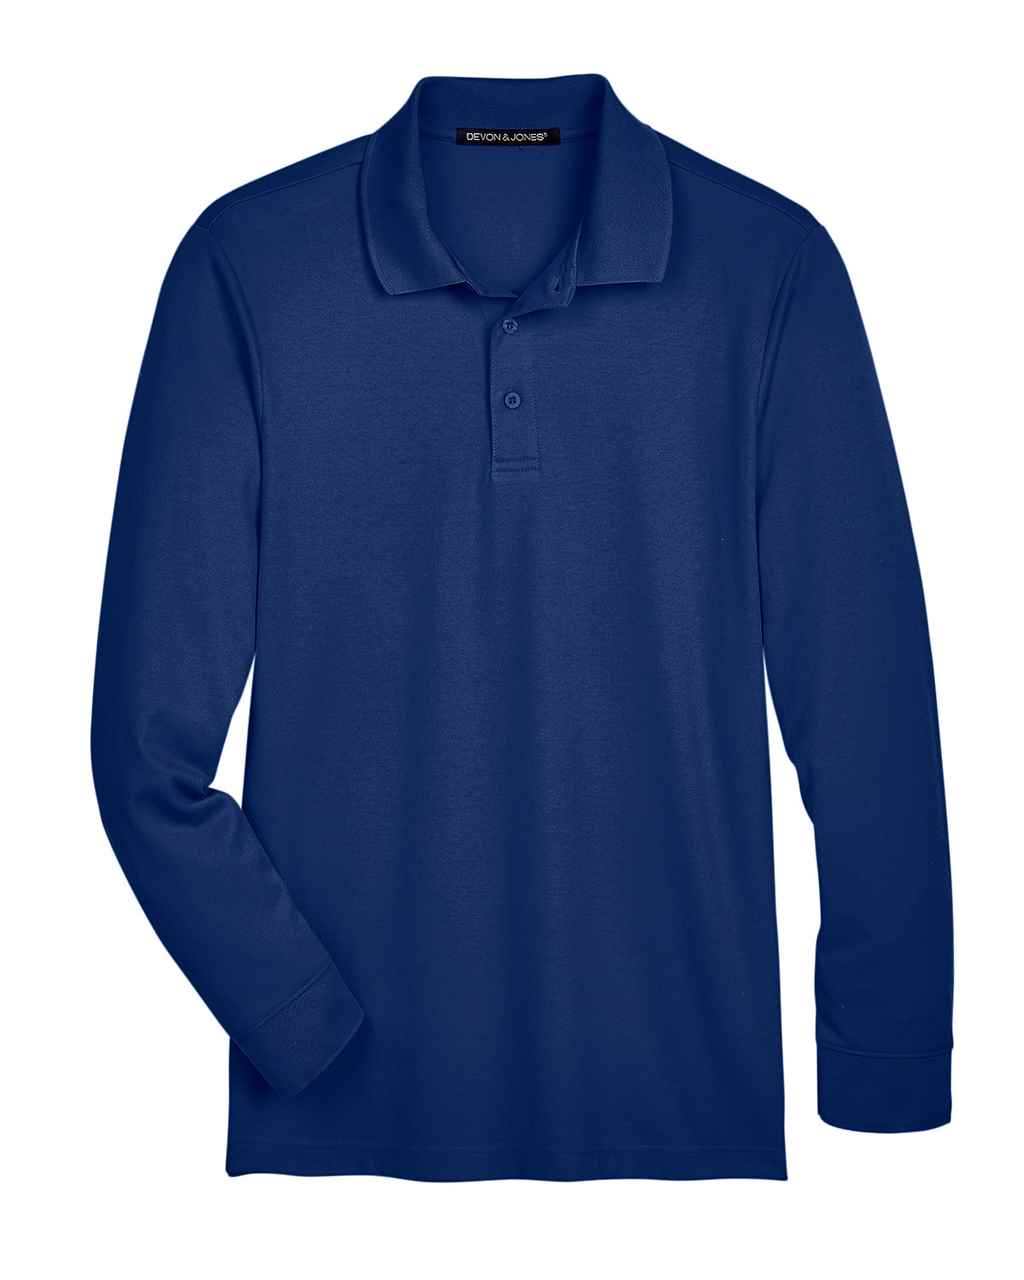 Picture of CownLux Performance Long Sleeve Polo